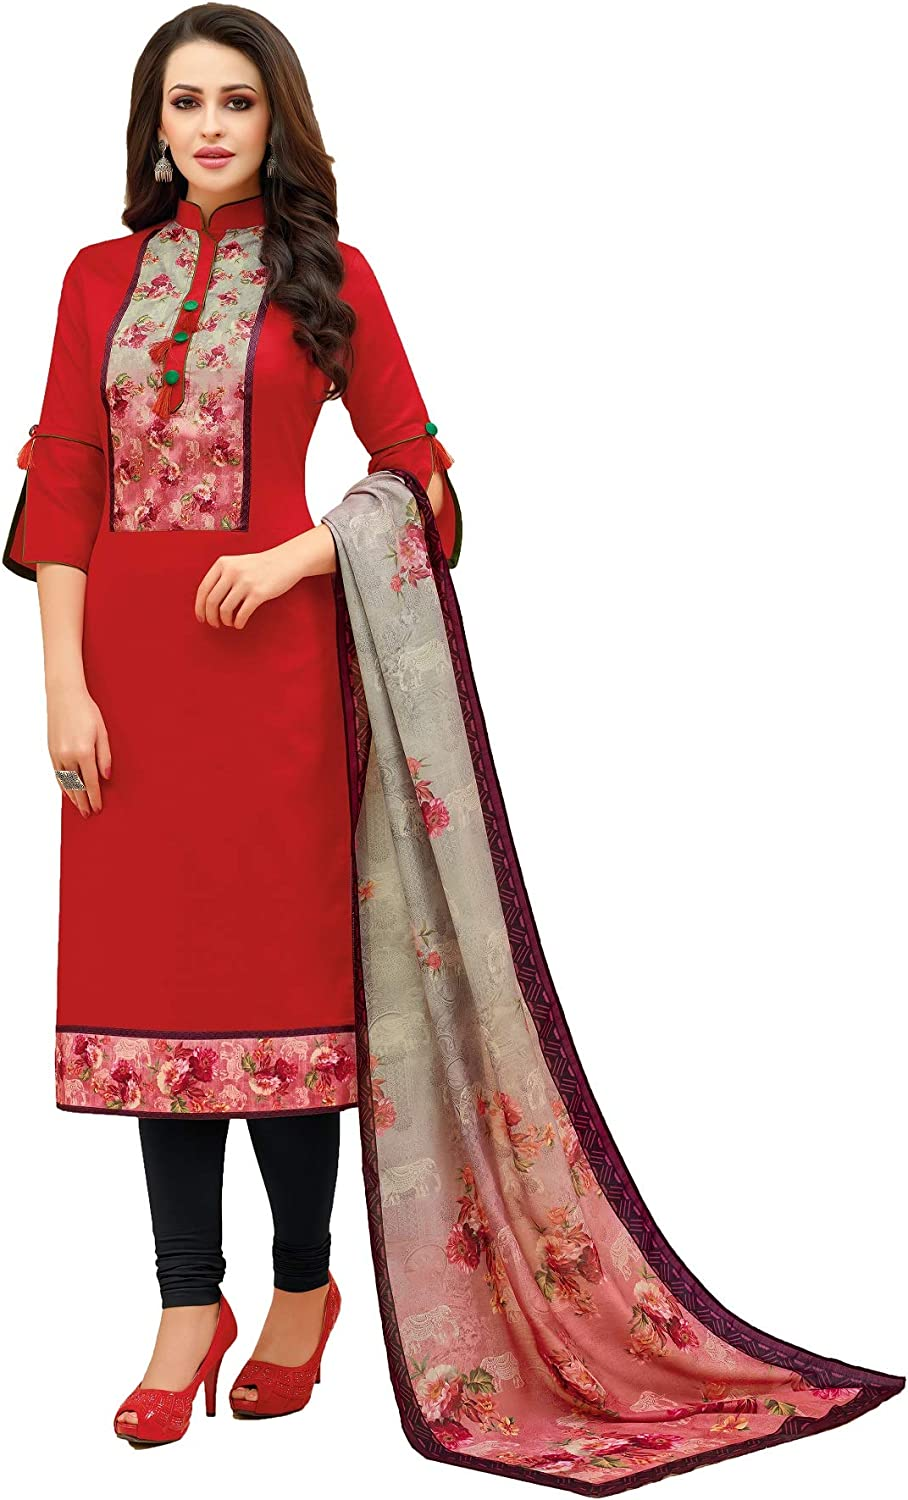 Ready To Wear Ethnic Indian Designer Straight Salwar Suit For Women Dress